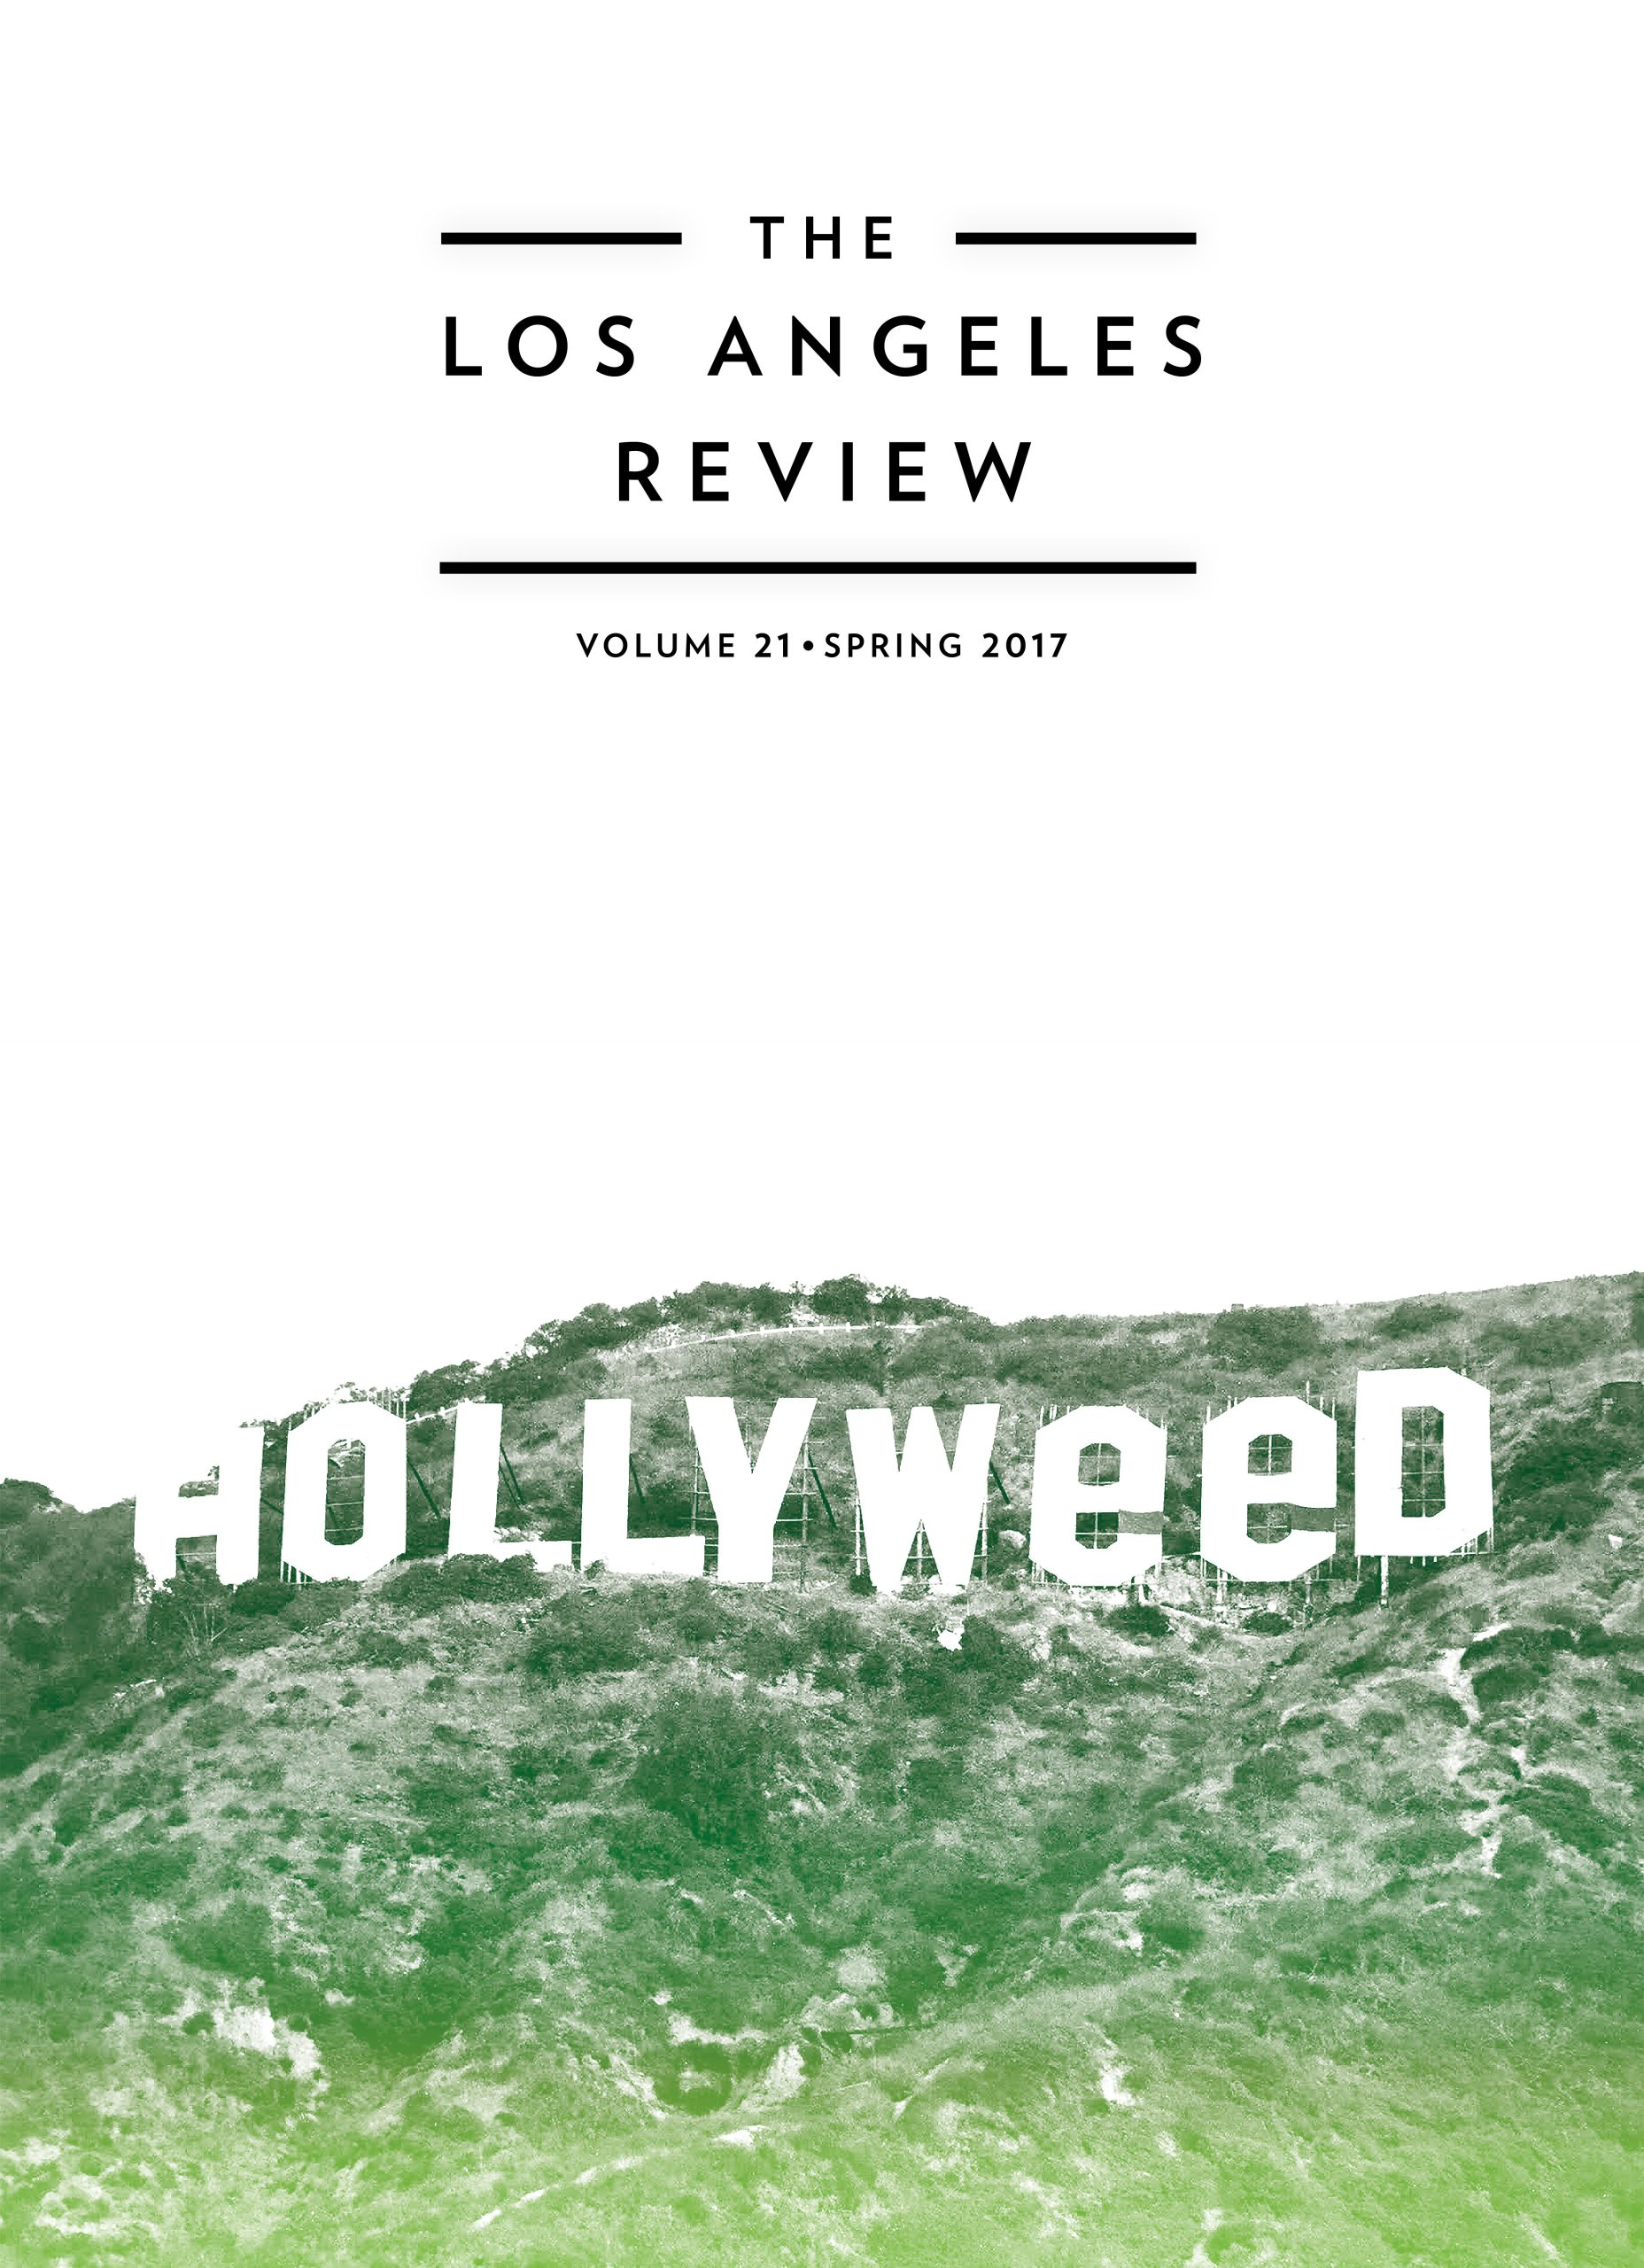 A green photograph of the Hollywood sign in Los Angeles when it was defaced and changed to read Holyweed with black script at the top that reads The Los Angeles Review volume 21 spring 2017.